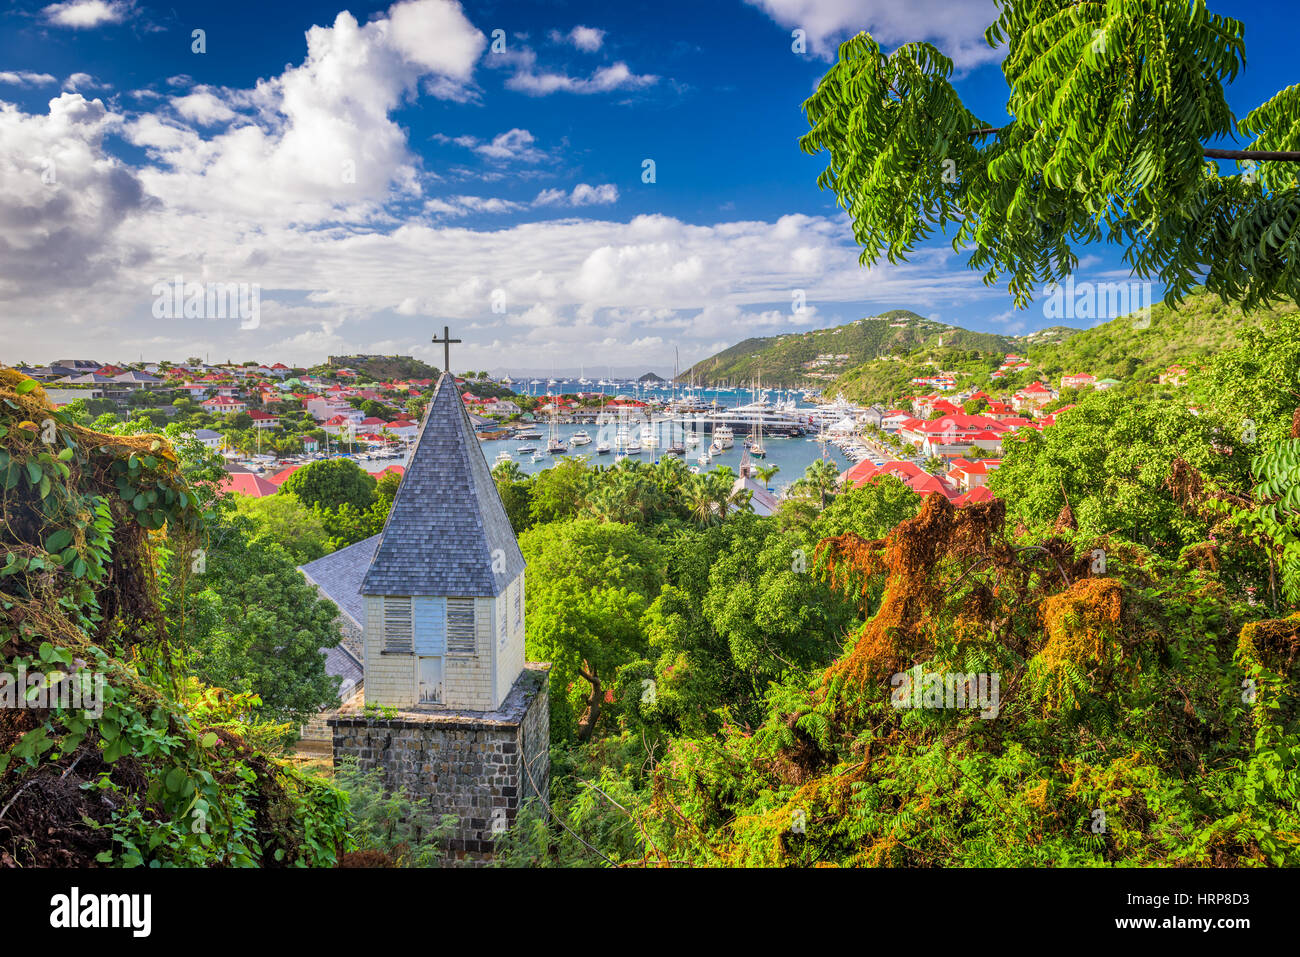 Saint Barthelemy Carribean view from behind - Stock Image